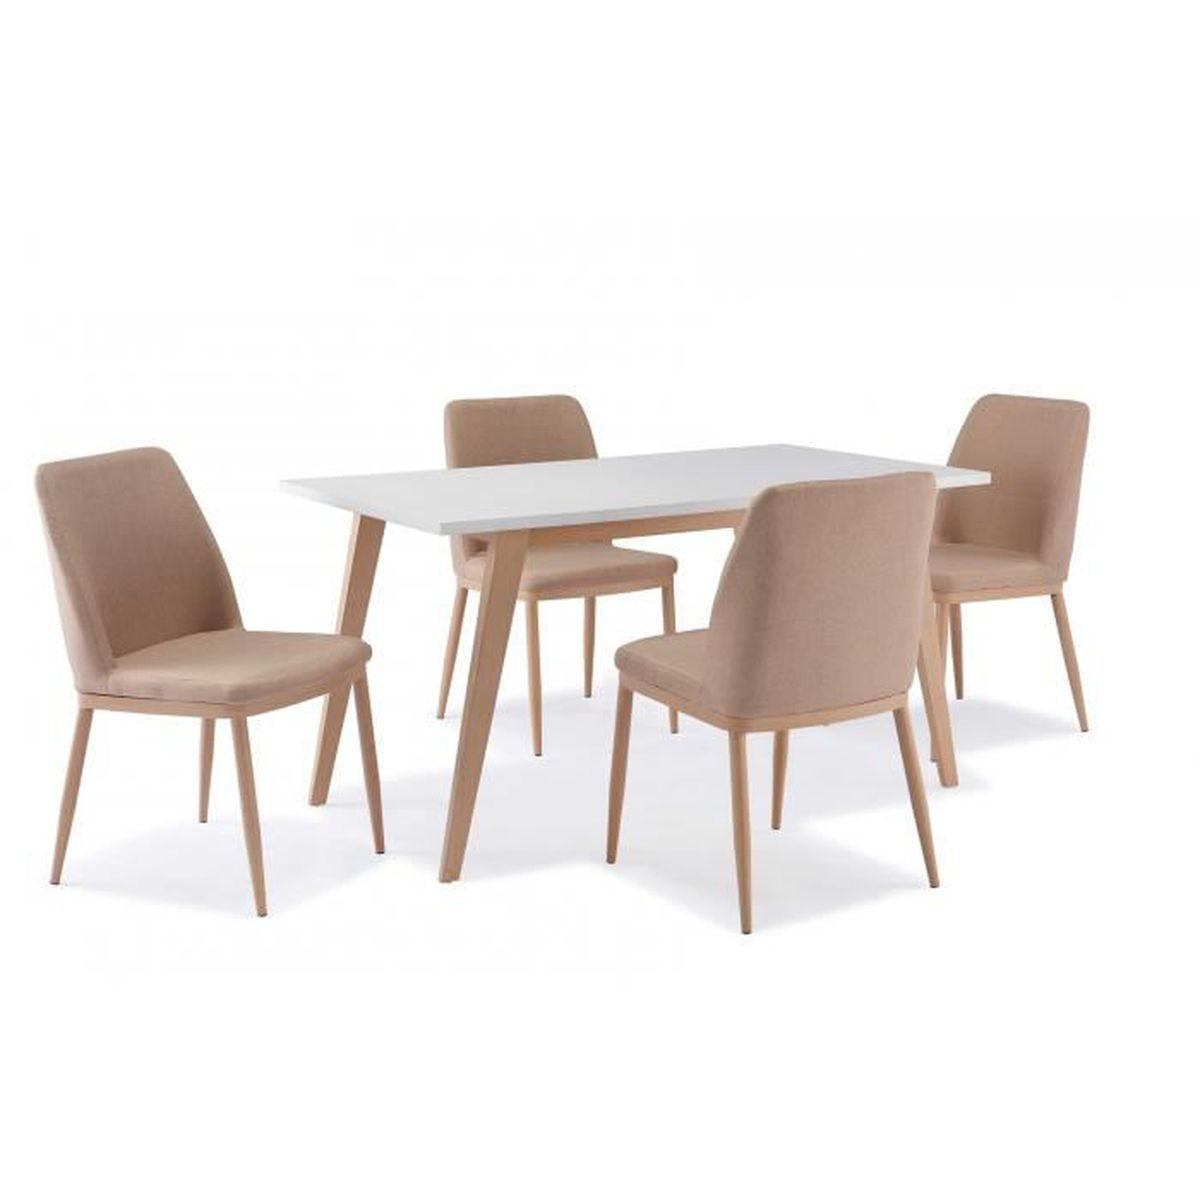 table scandinave 4 chaises confortable achat vente table a manger complet table scandinave. Black Bedroom Furniture Sets. Home Design Ideas